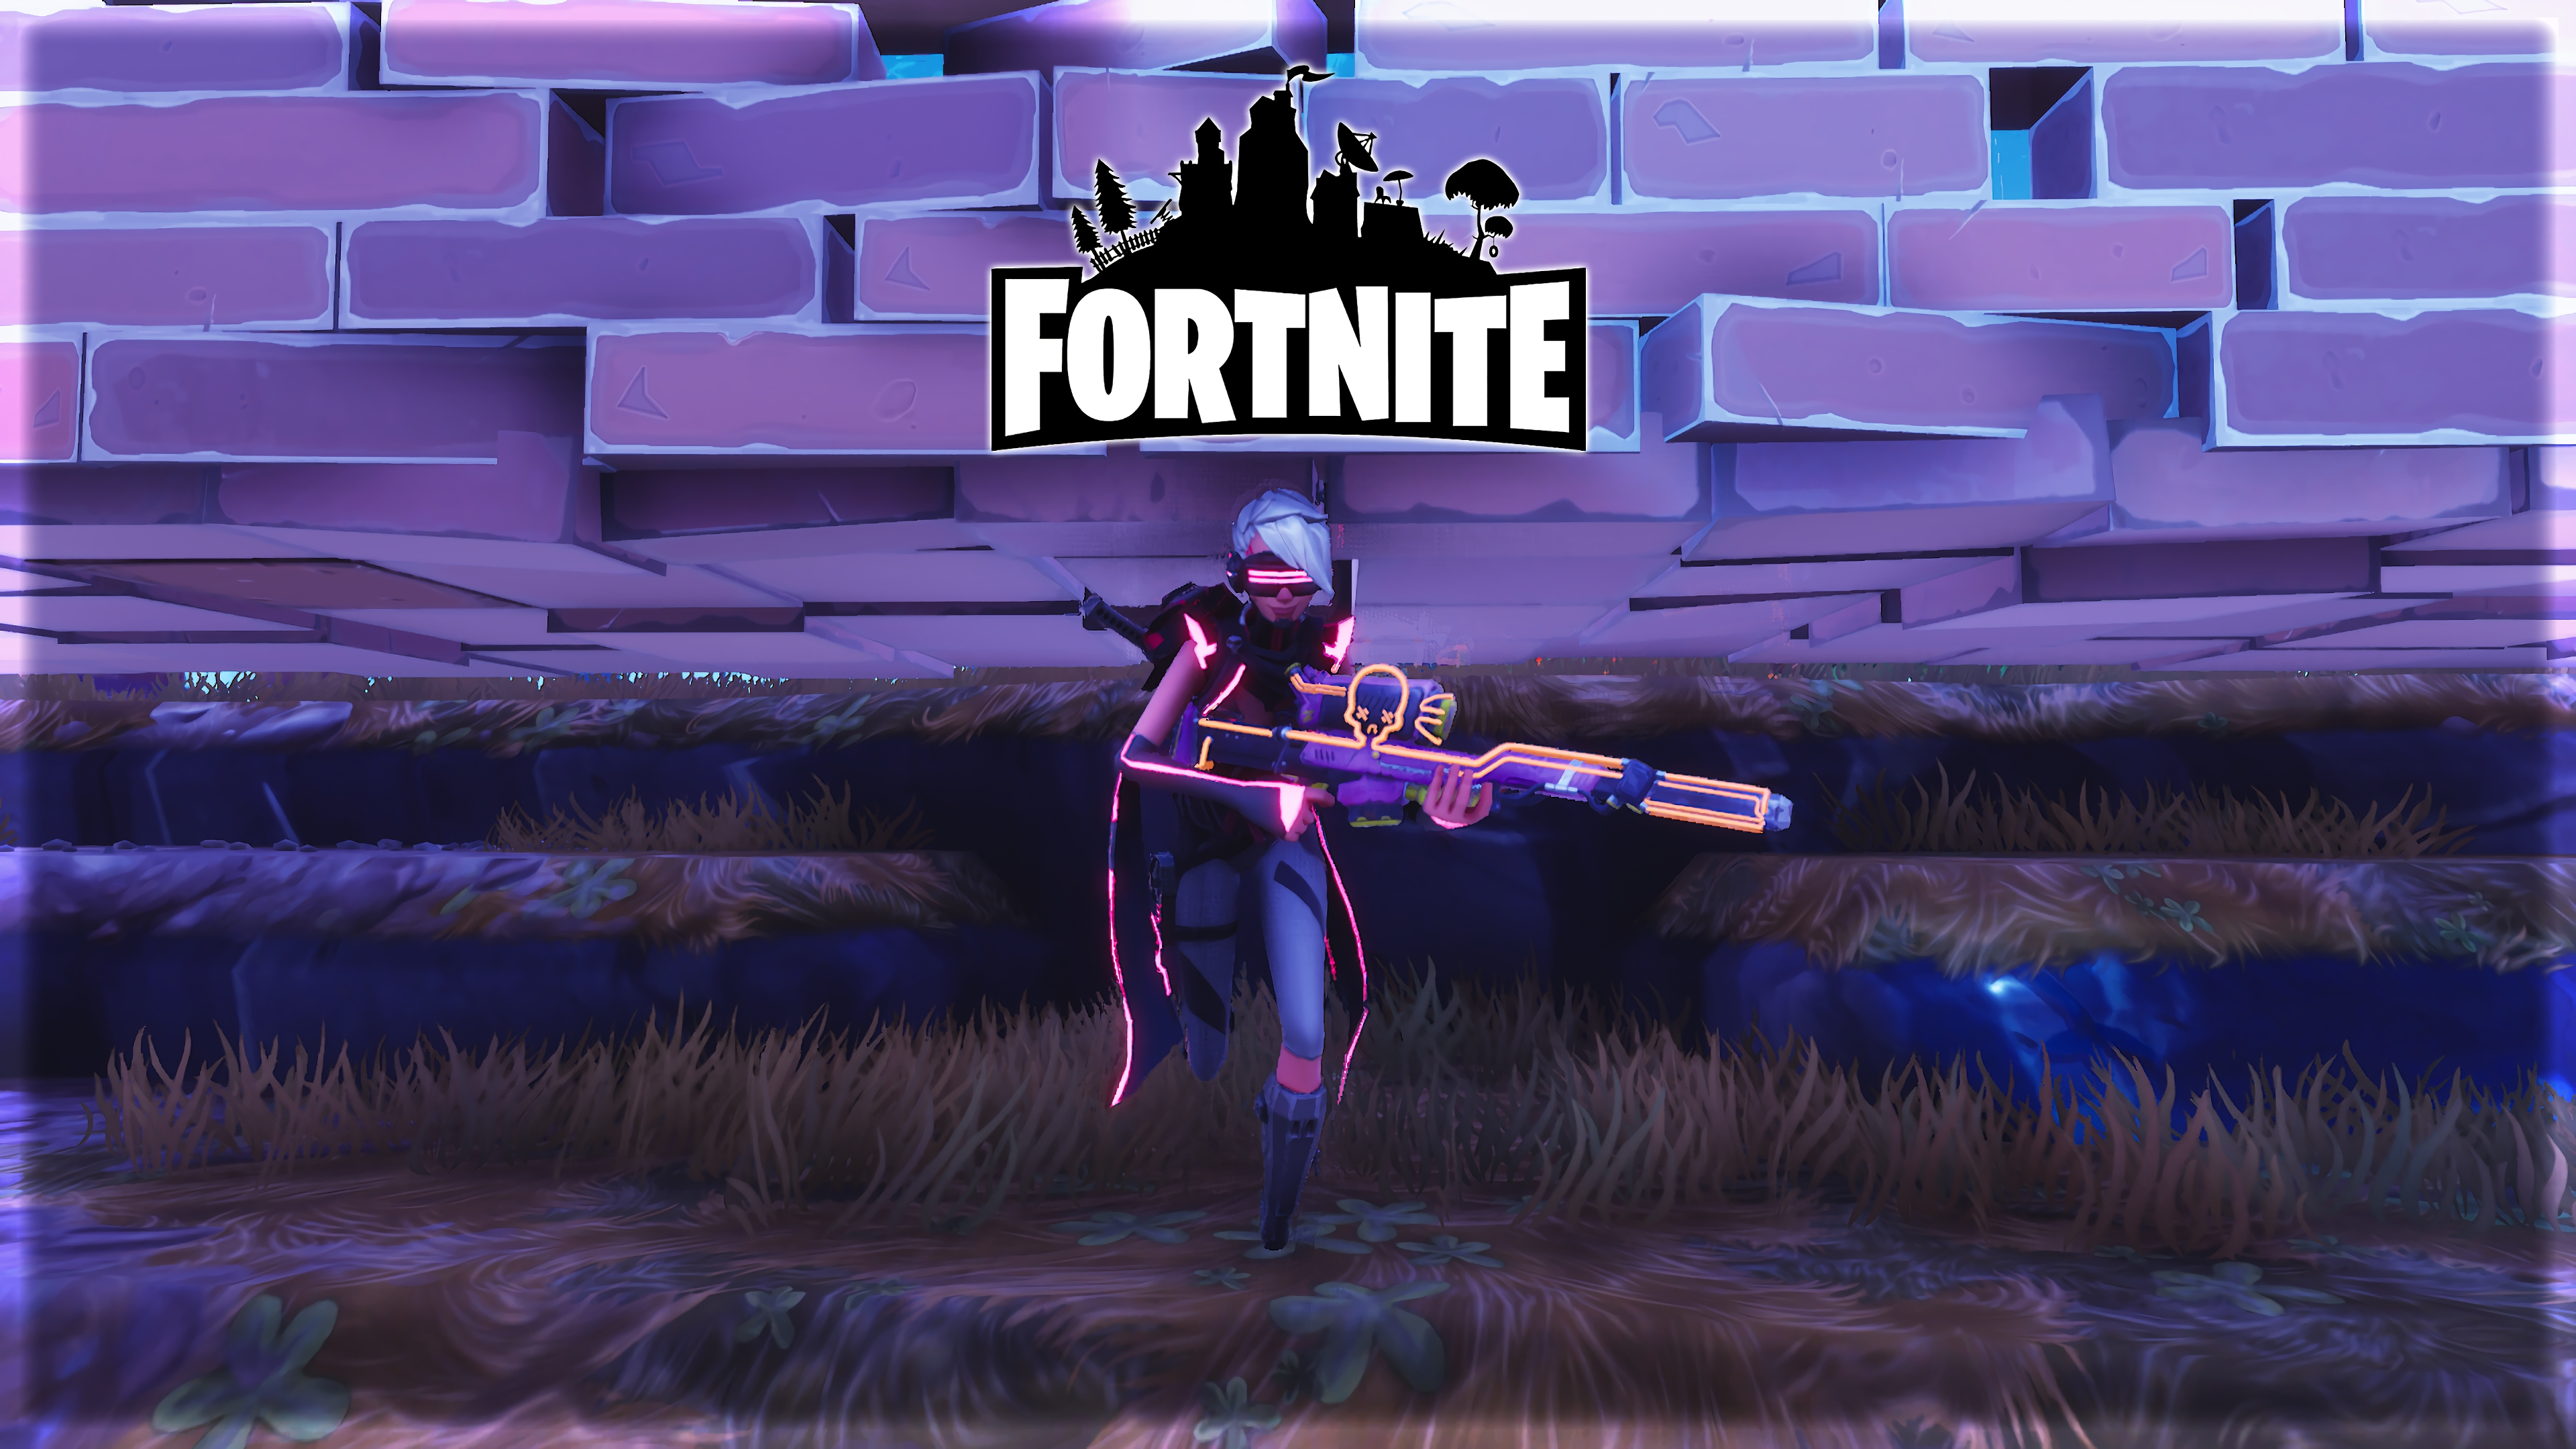 Fortnite background 98